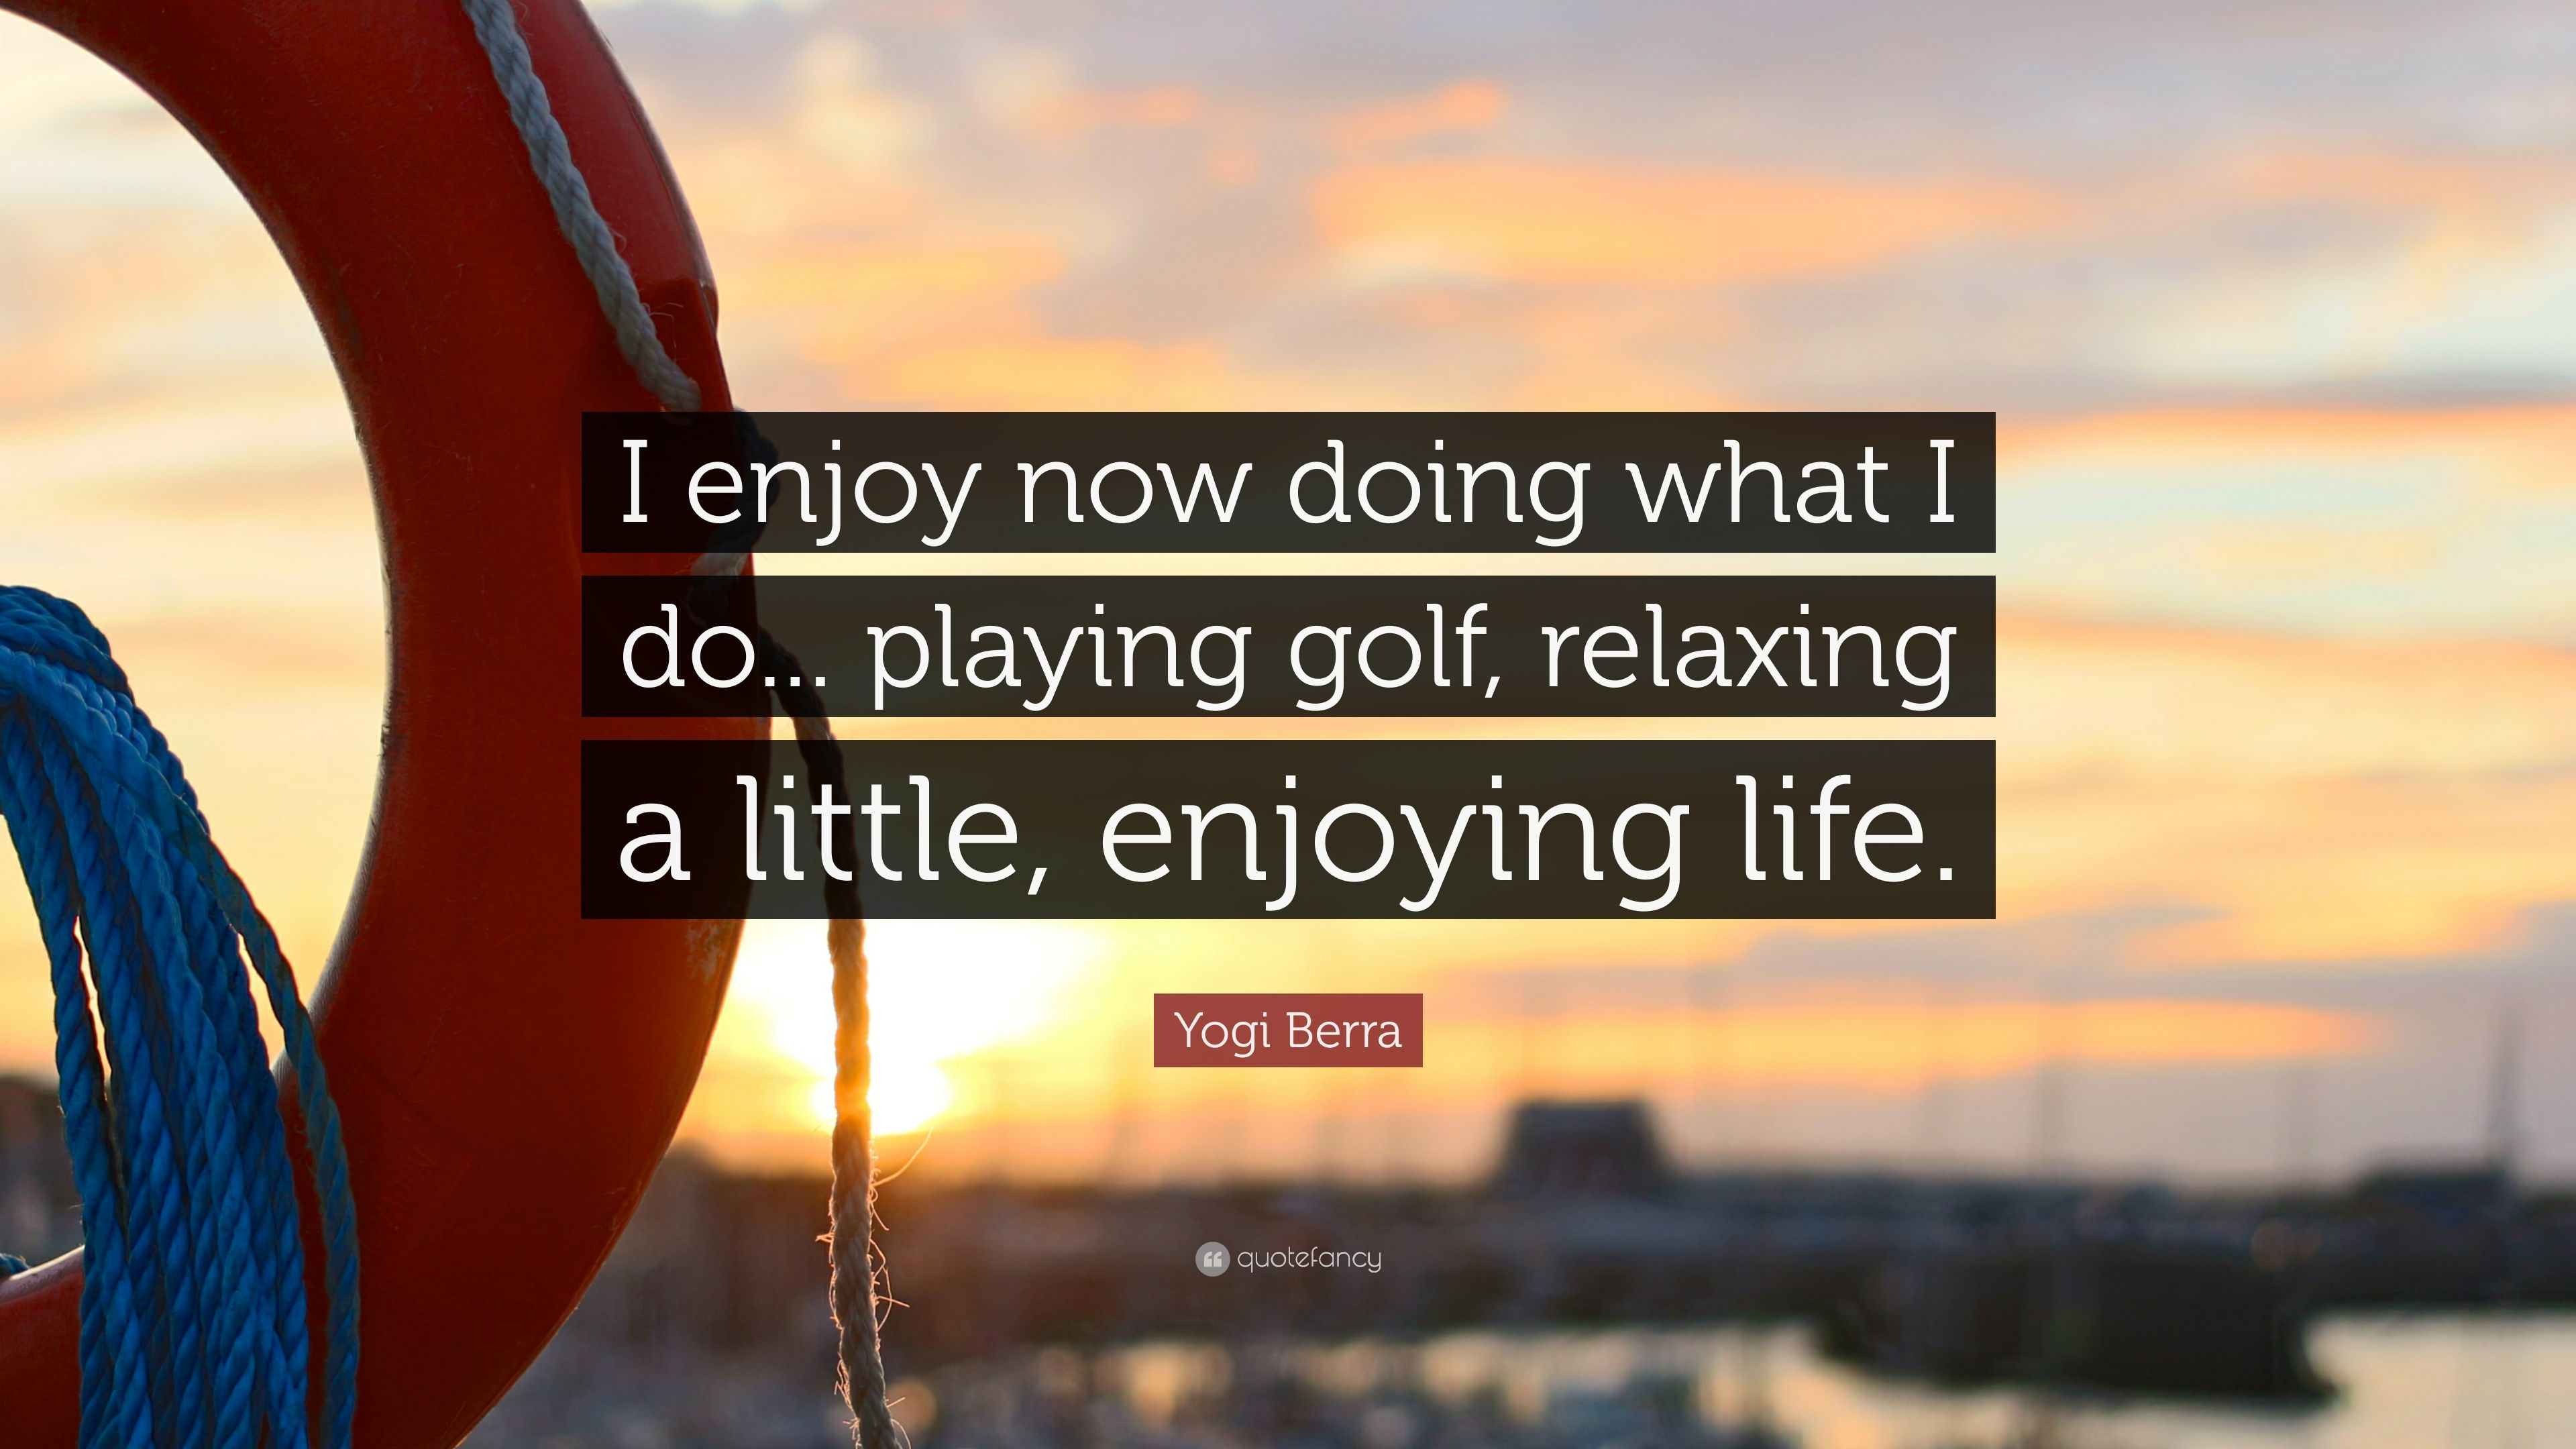 Inspirational Quotes About Relaxing And Enjoying Life Inspiring